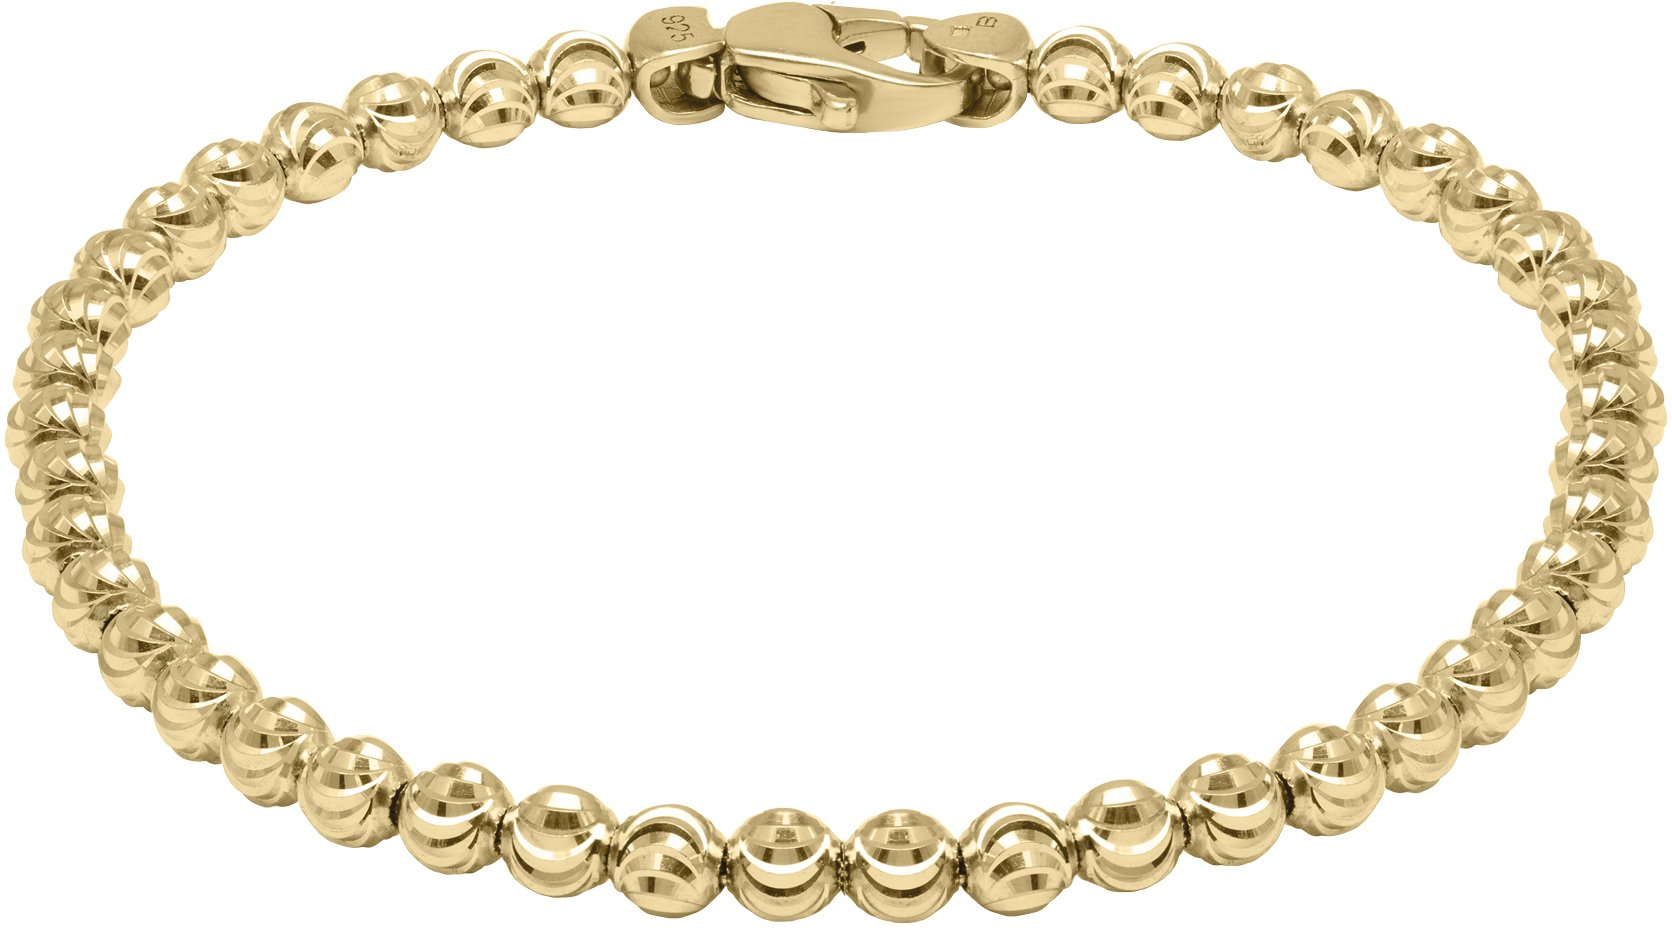 Officina Bernardi - Moon Collection - Bracelet (4 Color Choice) - Italian 925 Sterling Silver (yellow-gold-flashed-silver, 8 Inches)